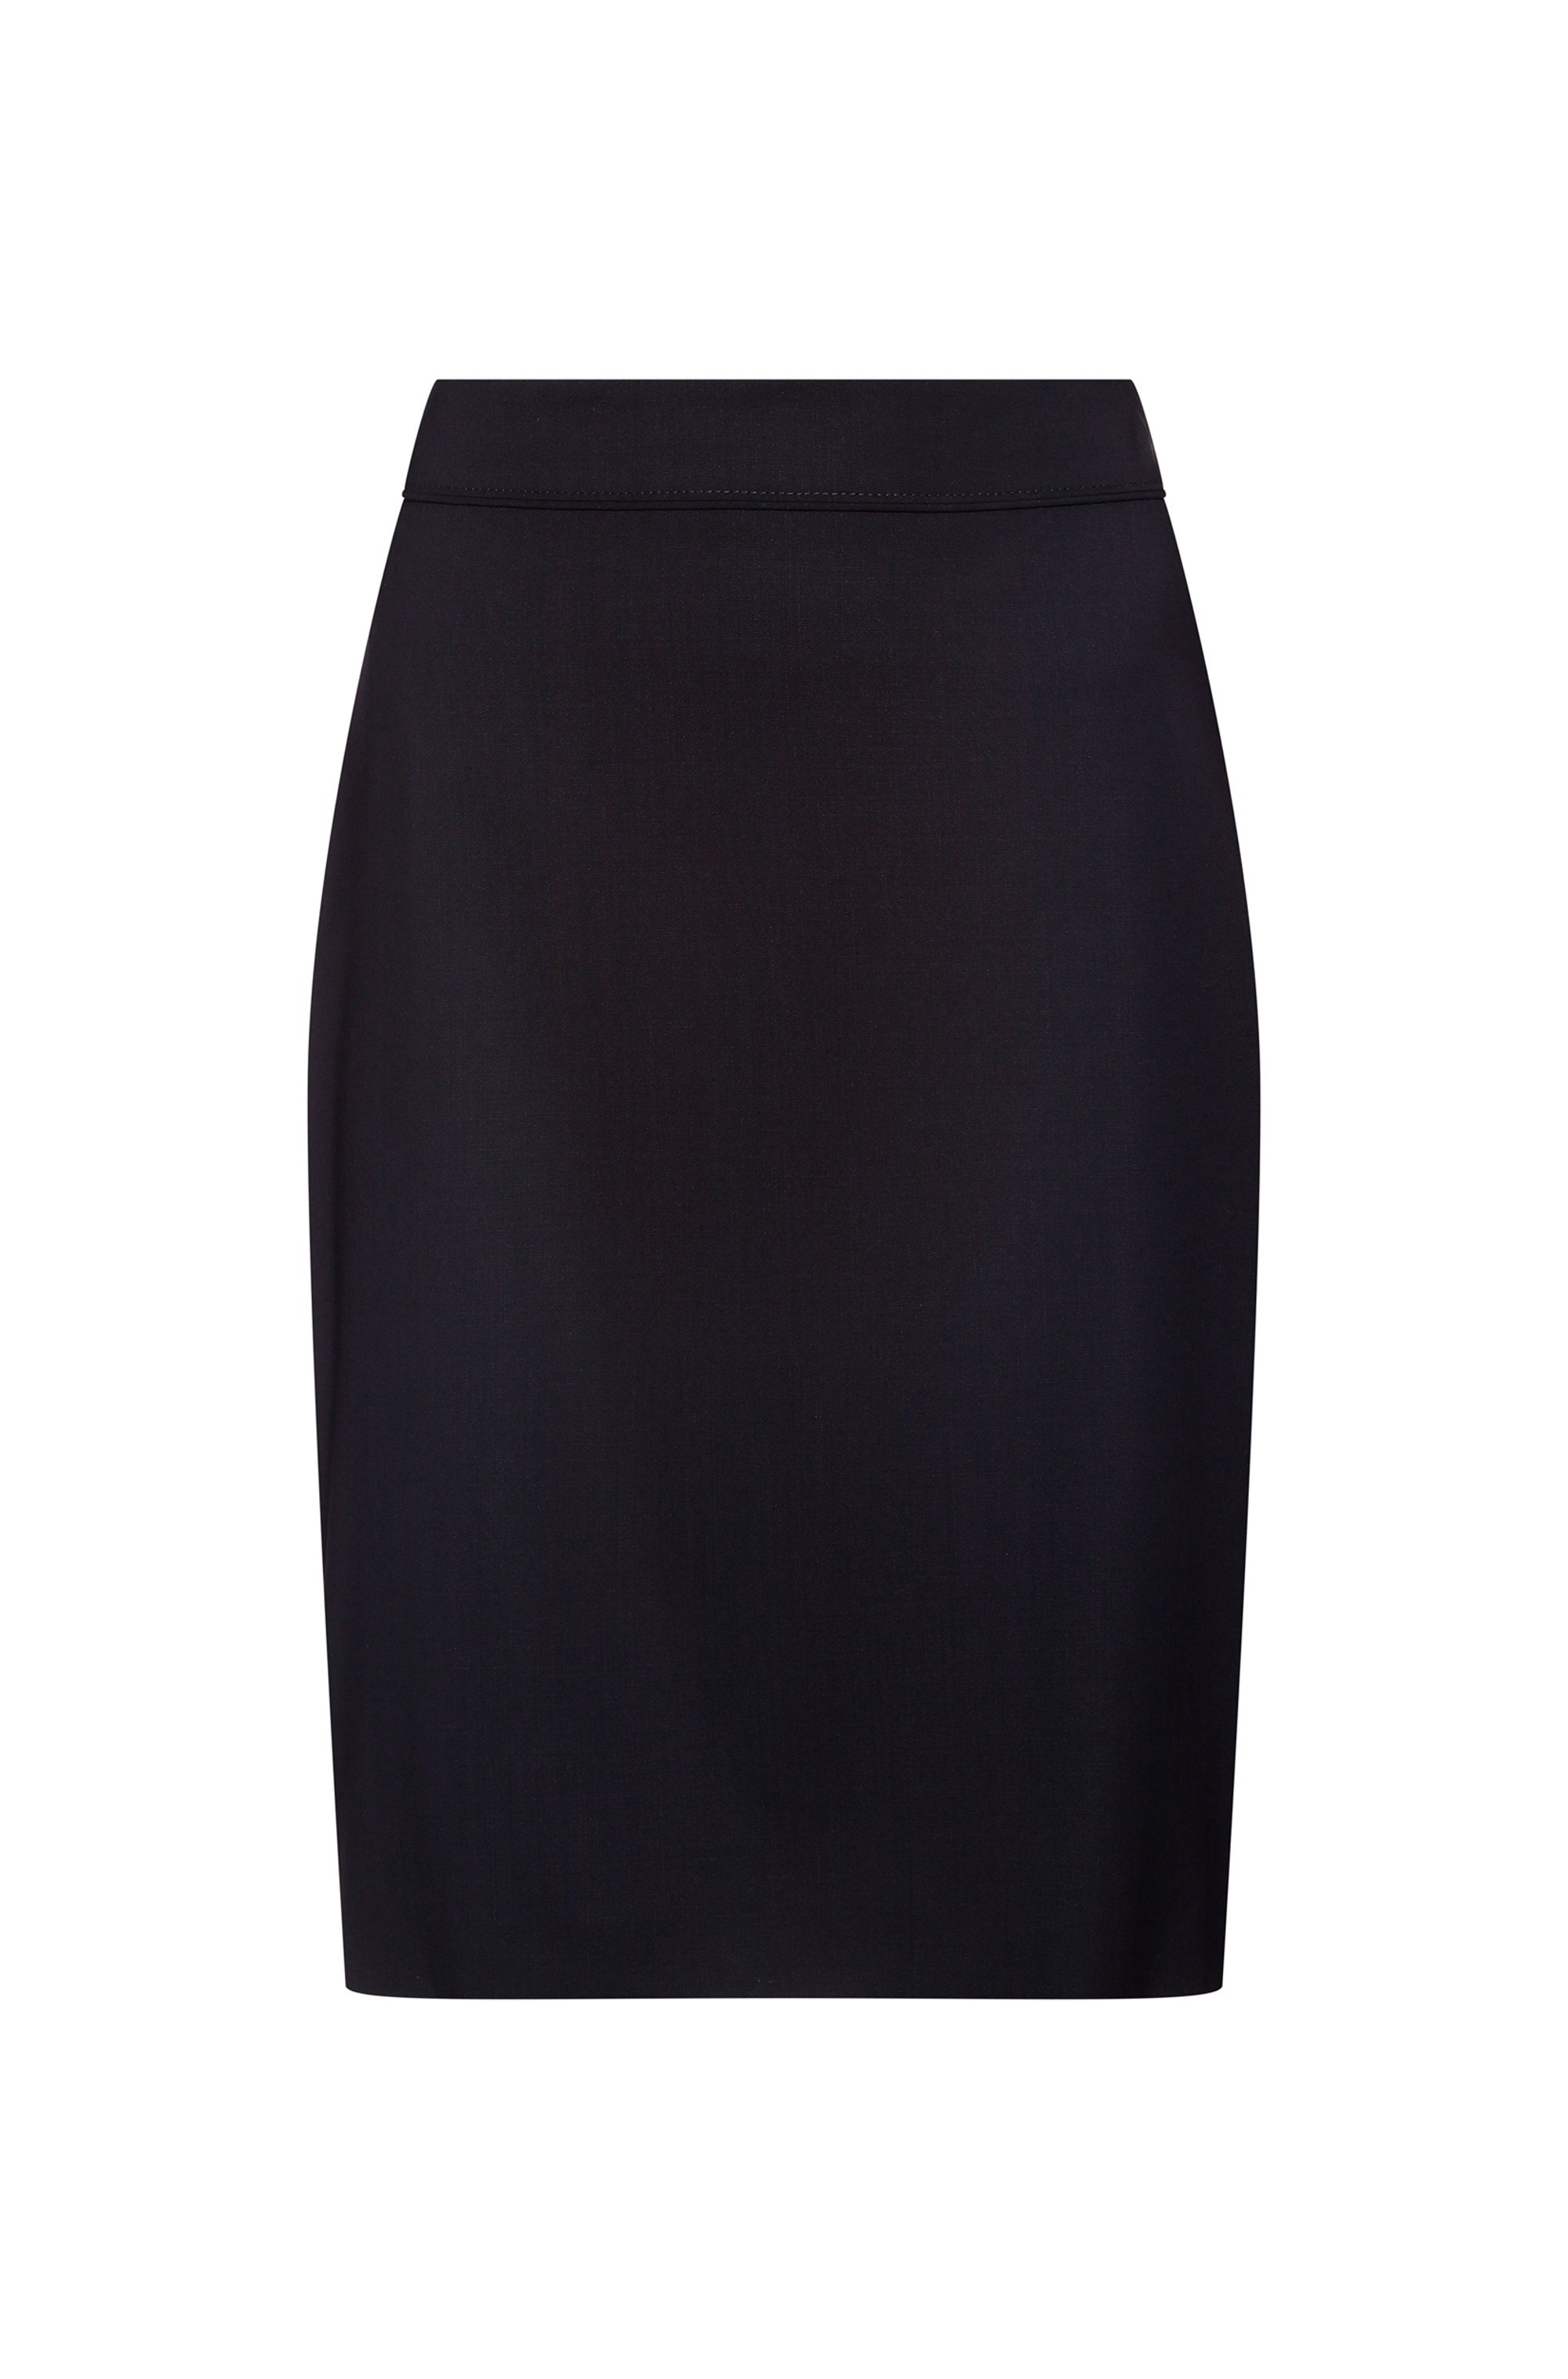 High-waisted pencil skirt in worsted stretch virgin wool, White